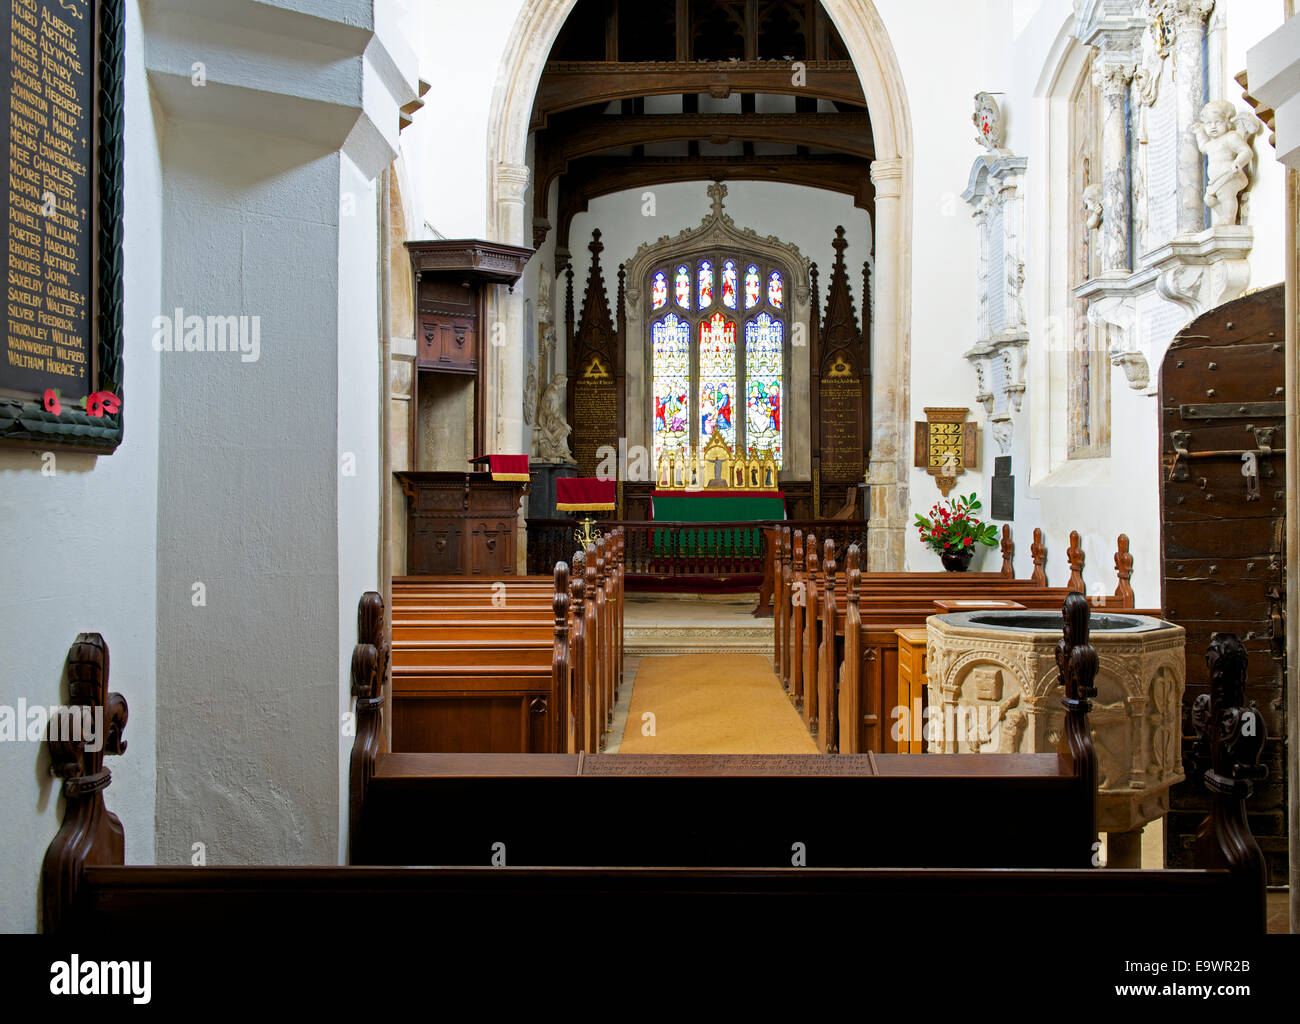 interior-of-the-church-in-the-grounds-of-belton-hall-near-grantham-E9WR2B.jpg